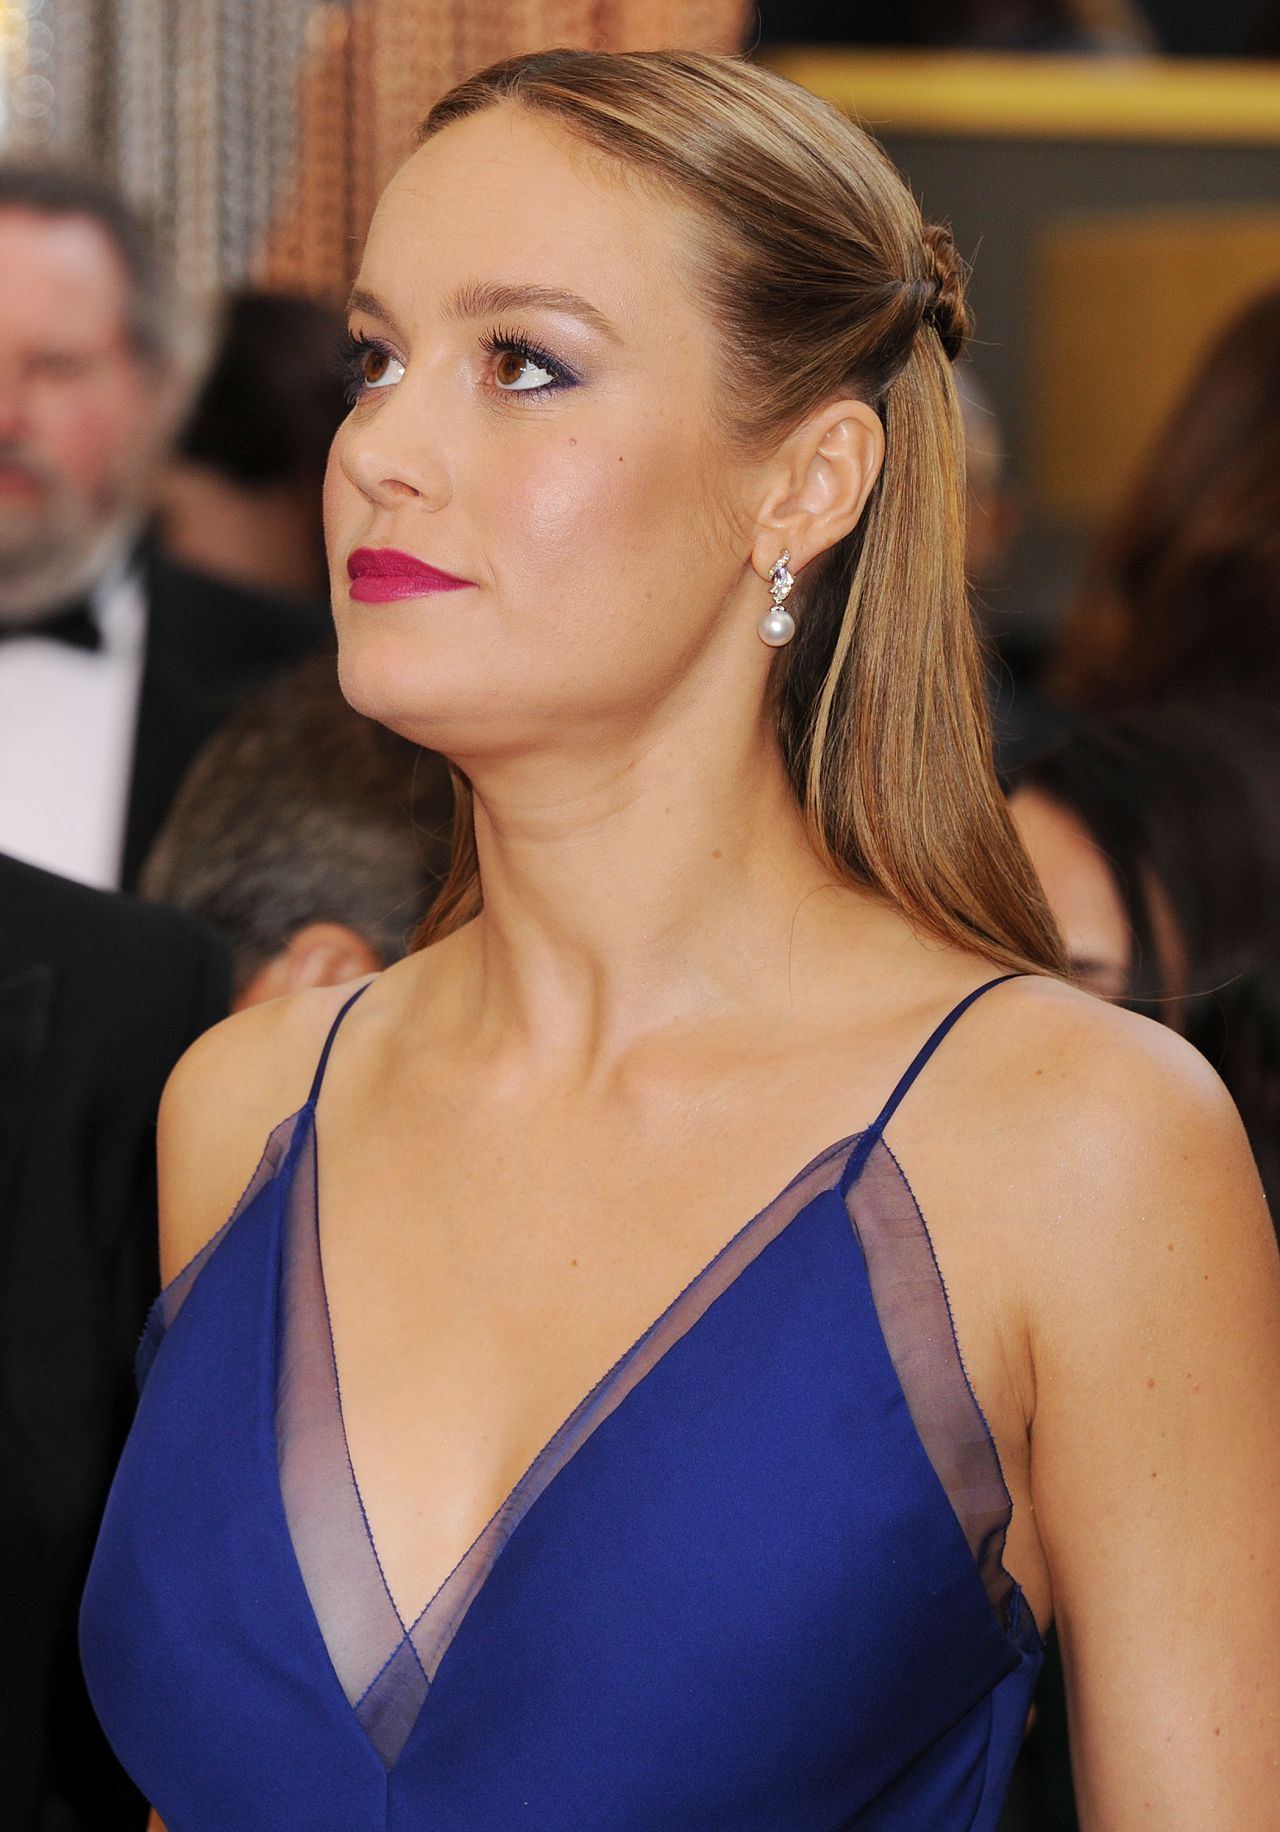 Brie Larson 2016 Oscar Winner For Best Actress